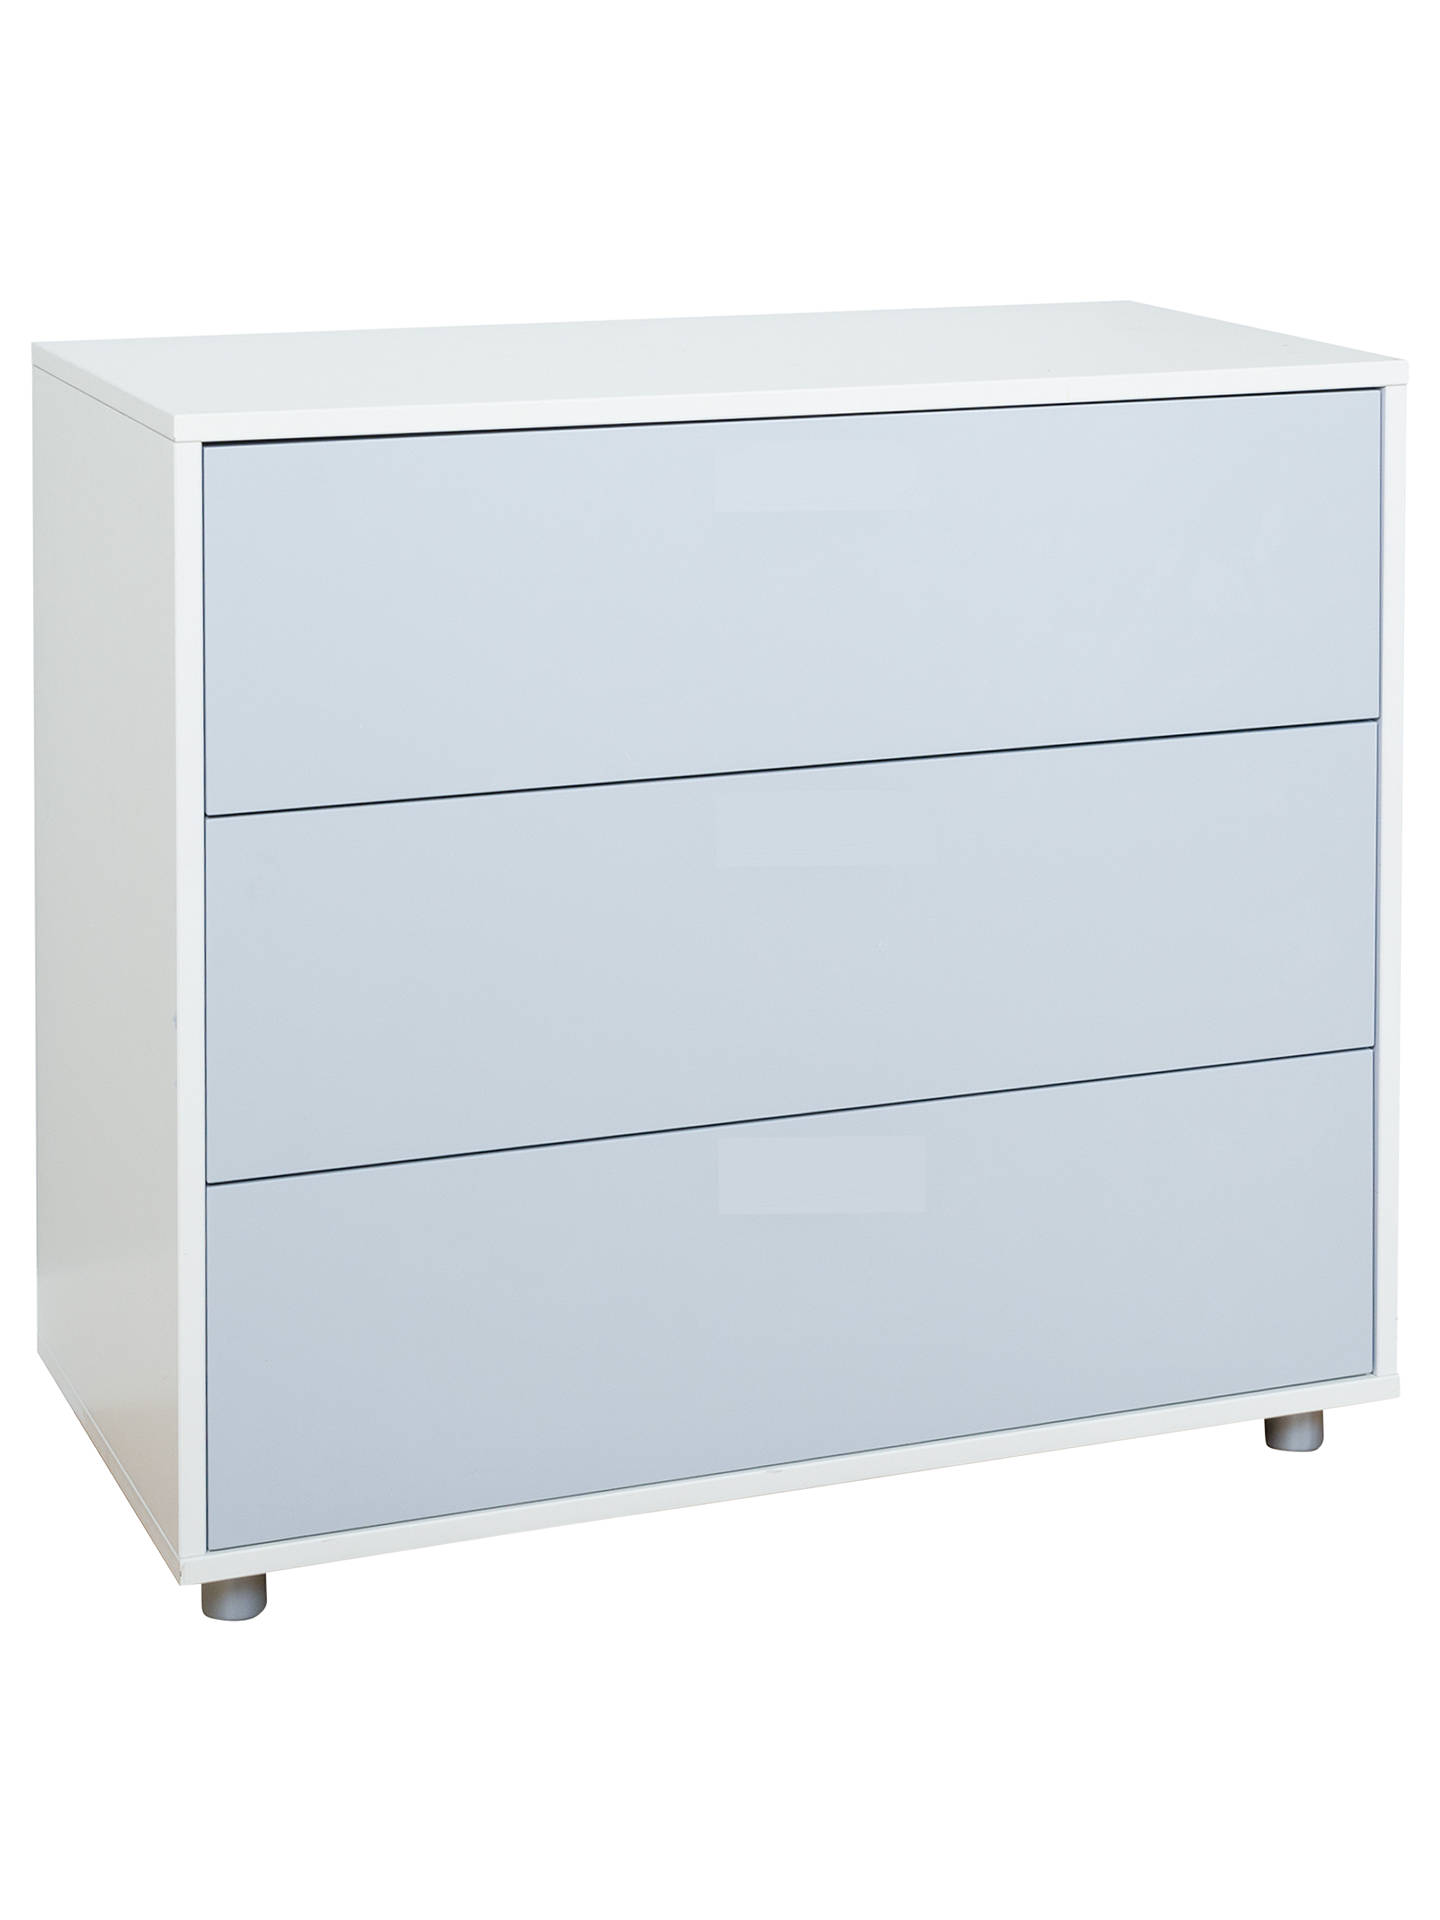 Stompa Uno S Plus 3 Drawer Chest At John Lewis Partners